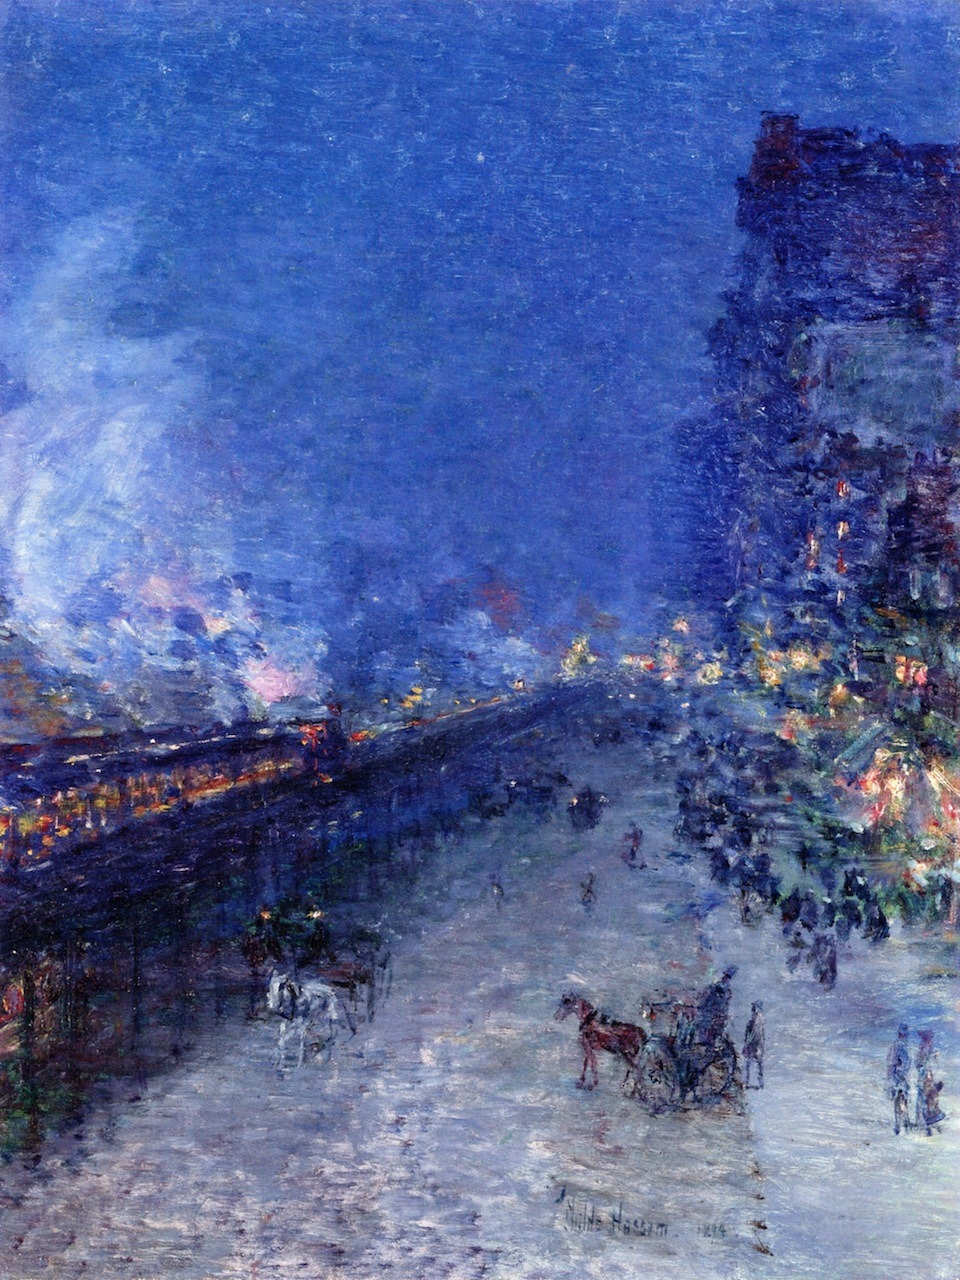 "dawnawakened:  Frederick Childe Hassam, Sixth Avenue El - Nocturne (also known as The El, New York) 1894  ""Hassam, who had shown an early promise for art, escaped the life of an accountant after mere weeks at that career. He trained as a draftsman in wood engraving, but quickly moved to watercolors and subsequent work in illustration. His studies in Paris at the Académie Julian left minimal impact on his art, as he was far more interested in that which the Impressionists were at. Though he didn't consider himself an Impressionist, he is best known for a similar use of color, light and brushwork."" - Art History"